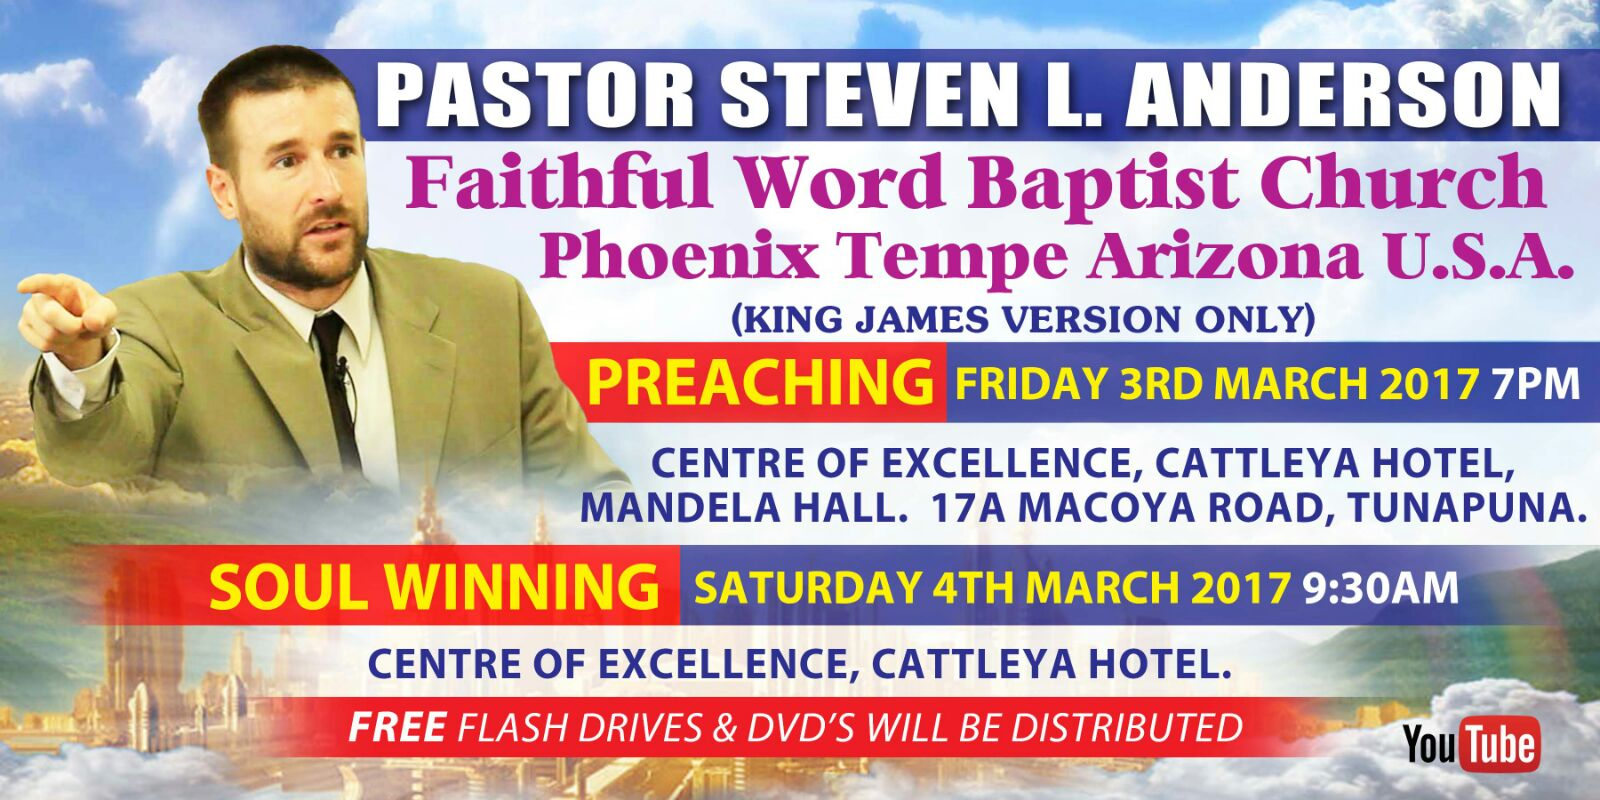 I will still be preaching on Friday, March 3, 2017, in Trinidad and Tobago, but the location has changed. Courtyard Marriot Hotel in Invaders Bay, ...